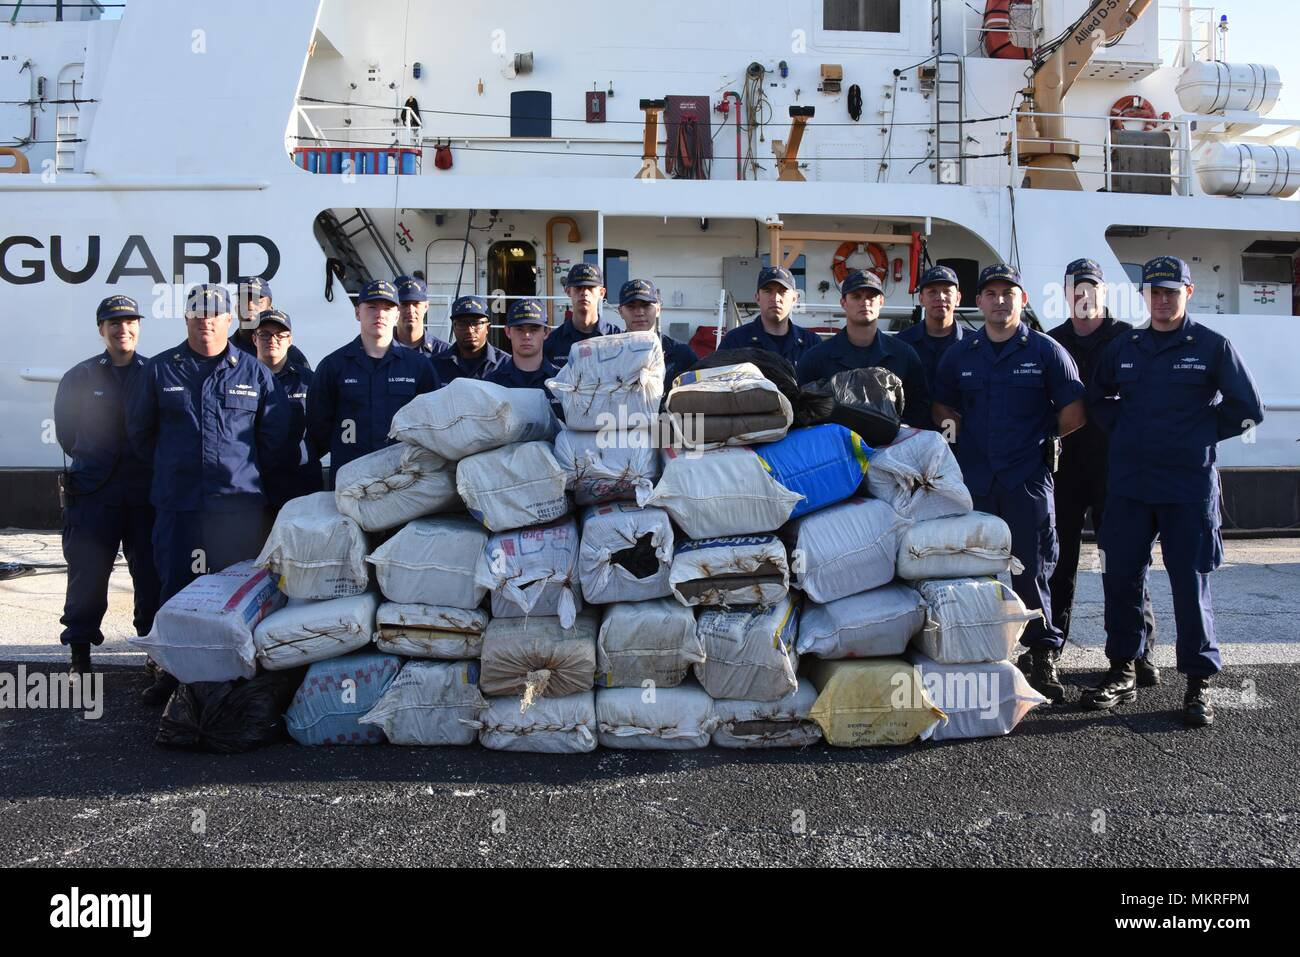 Coast Guard Cutter Resolute crewmembers stand next to approximately 1 ton of marijuana worth an estimated $2.2 million wholesale value, in St. Petersburg, Florida, Tuesday, May 8, 2018, May 8, 2018. The crew aboard the 210-foot Reliance-class cutter, homeported in St. Petersburg, offloaded the drugs after interdicting two suspected drug smuggling vessels and detaining seven suspected drug smugglers in the Caribbean Sea with the assistance of Customs and Border Patrol as part of Operation Riptide. (U.S. Coast Guard photo by Petty Officer 2nd Class Ashley J. Johnson). () - Stock Image